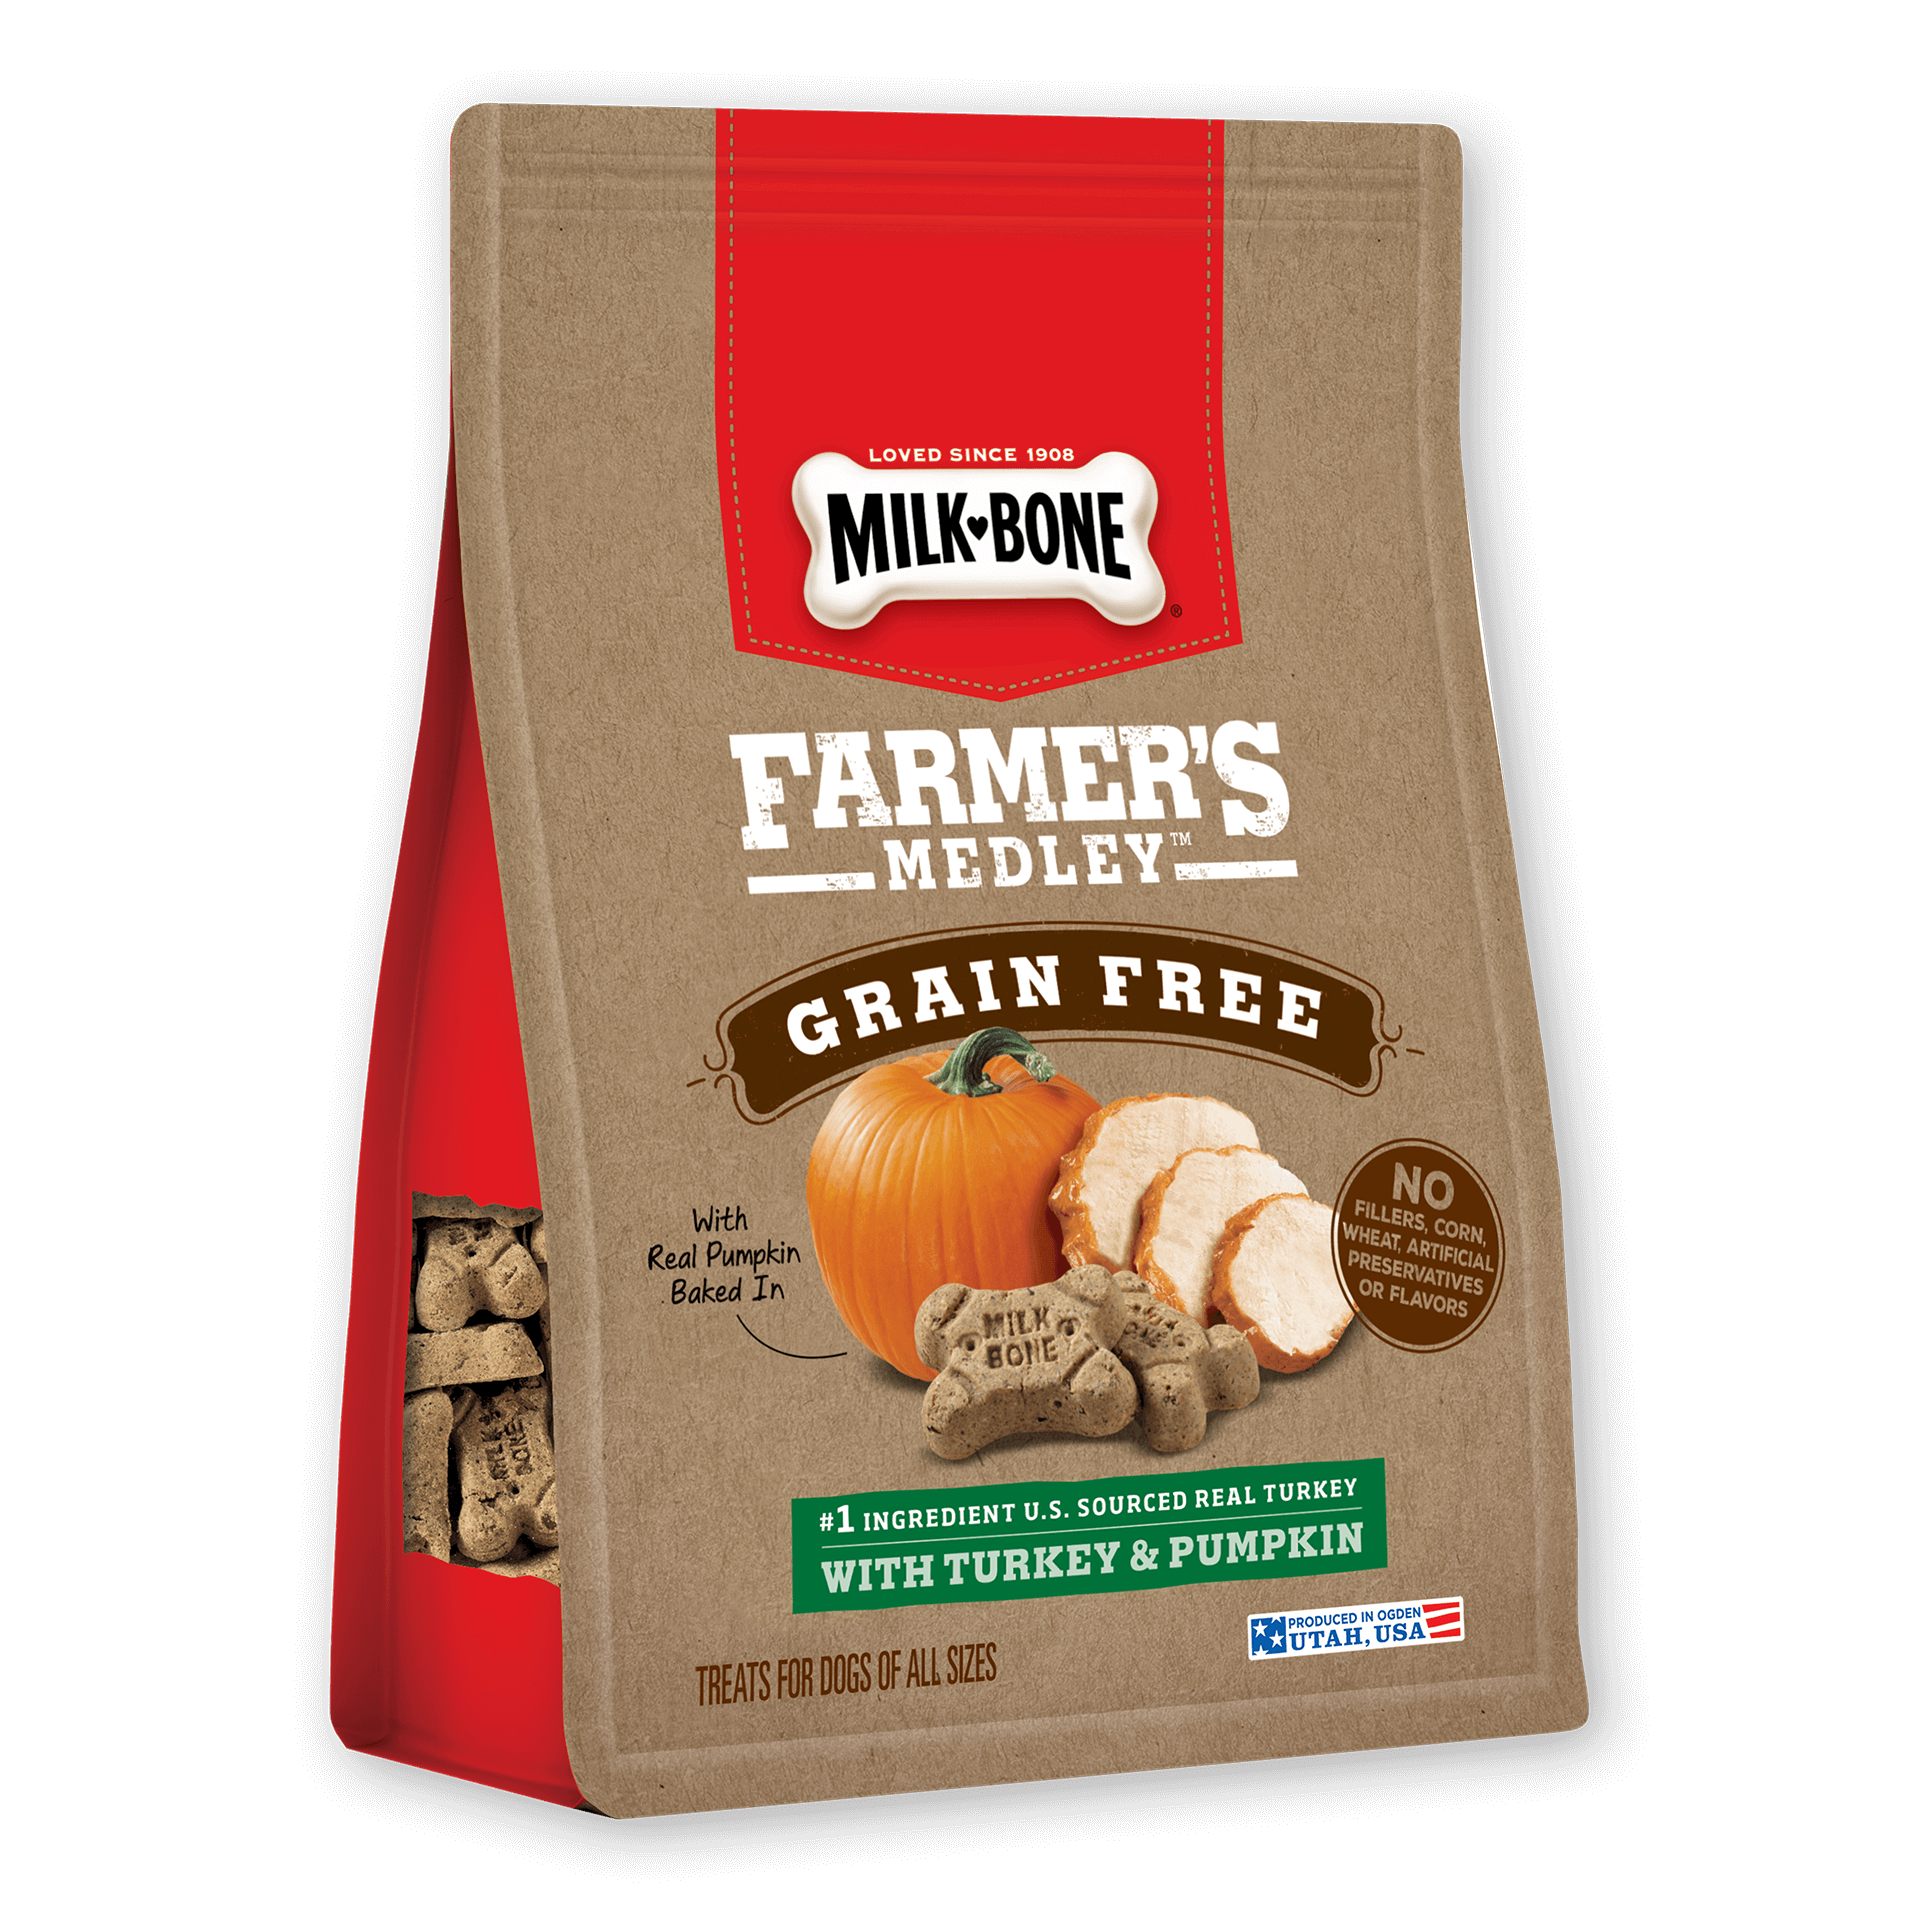 Dog biscuit clipart graphic freeuse stock Farmer's Medley®: Dog Biscuits with No Fillers | Milk-Bone® graphic freeuse stock